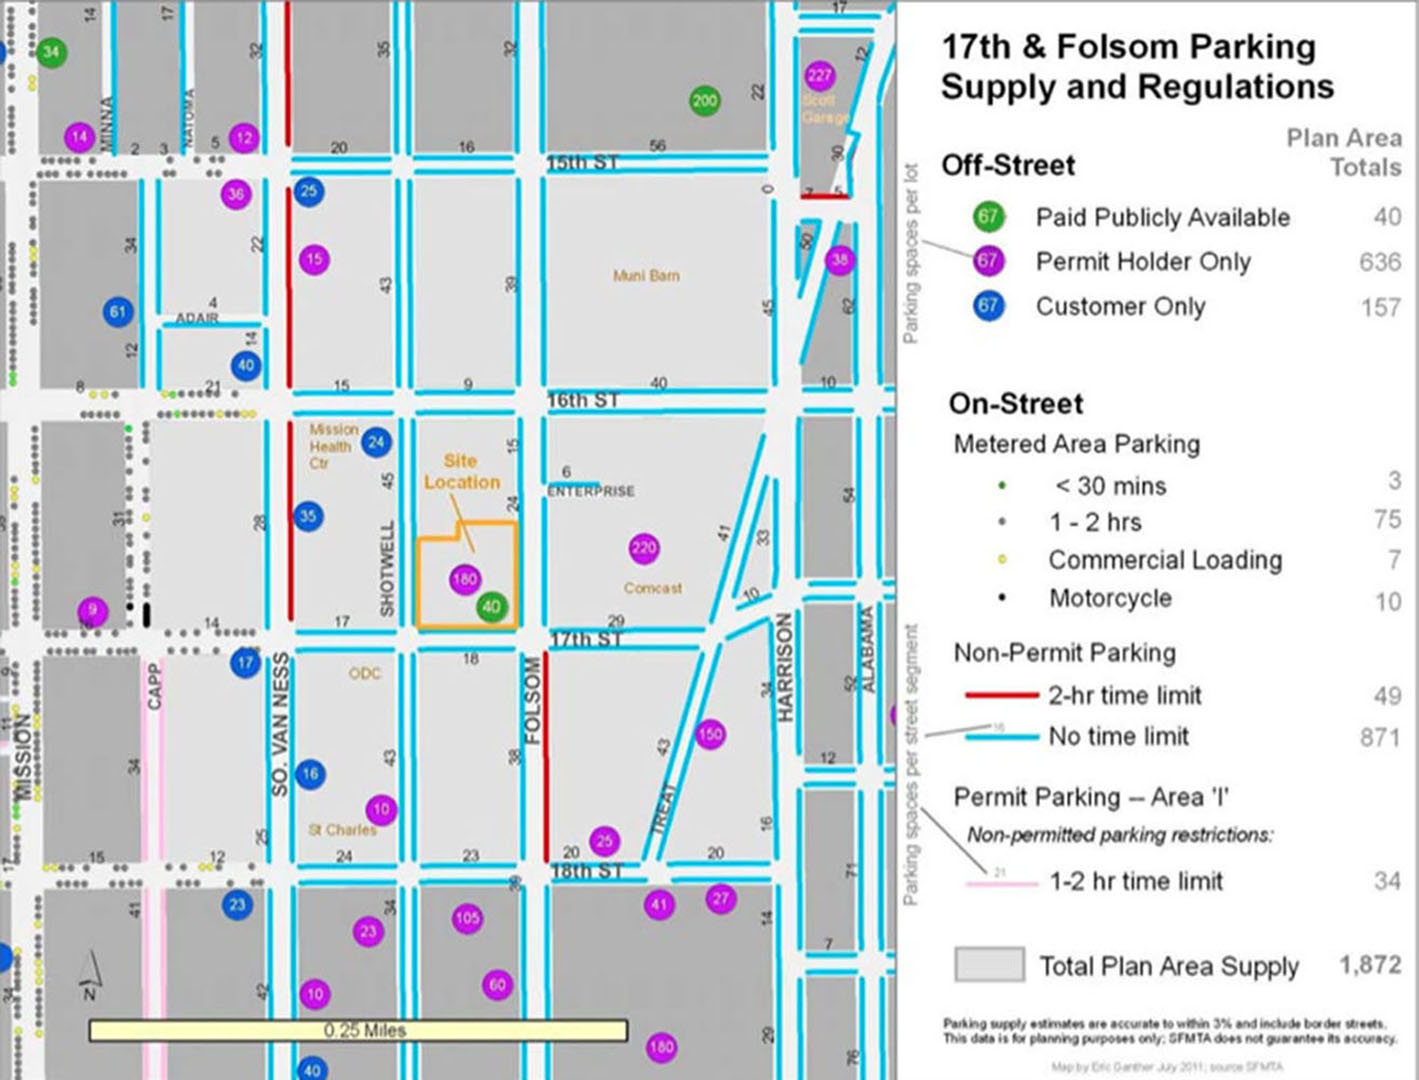 The available parking supply within 1/4 mile of proposed park on 17th and Folsom Streets. Source SFMTA